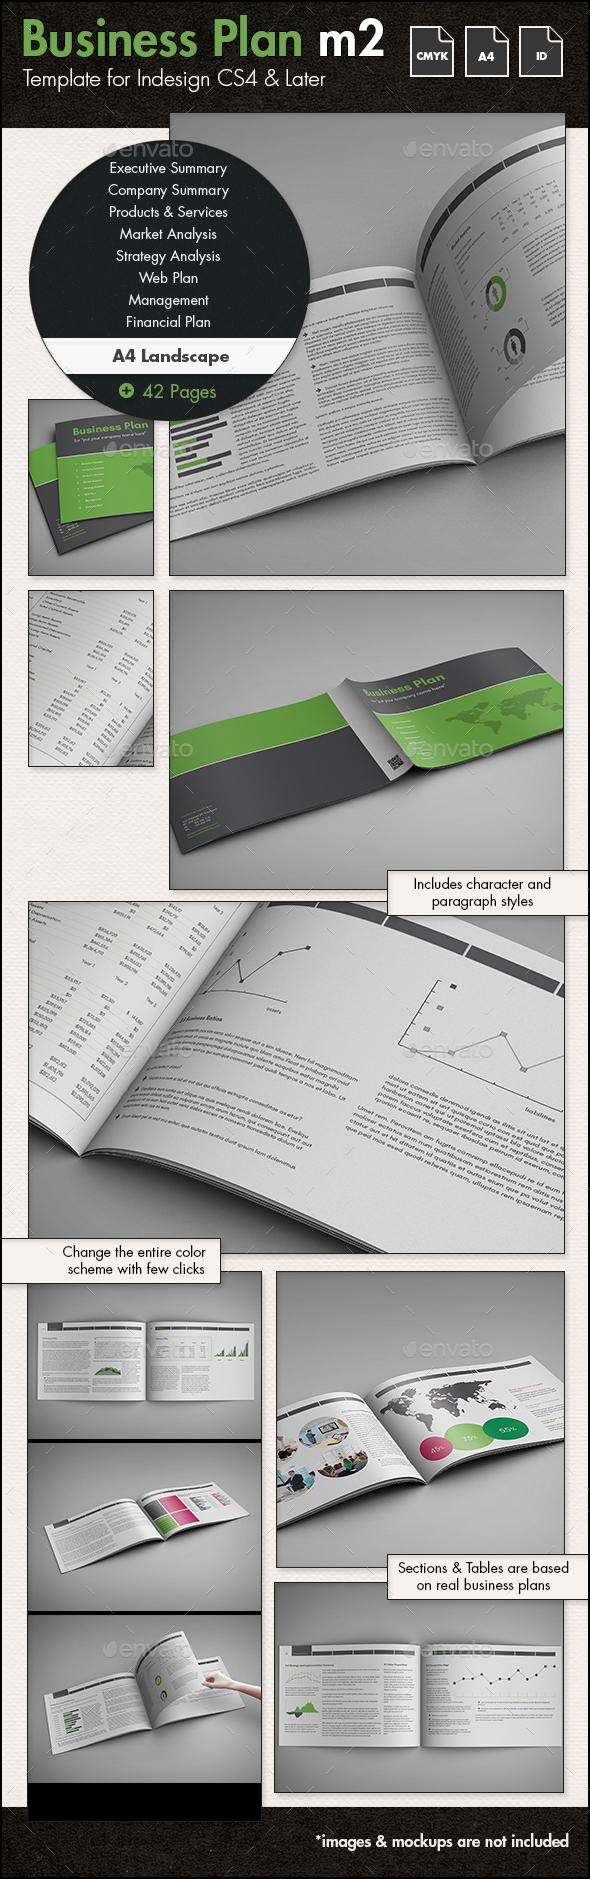 Business Plan Template m2 - A4 Landscape - Proposals & Invoices Stationery